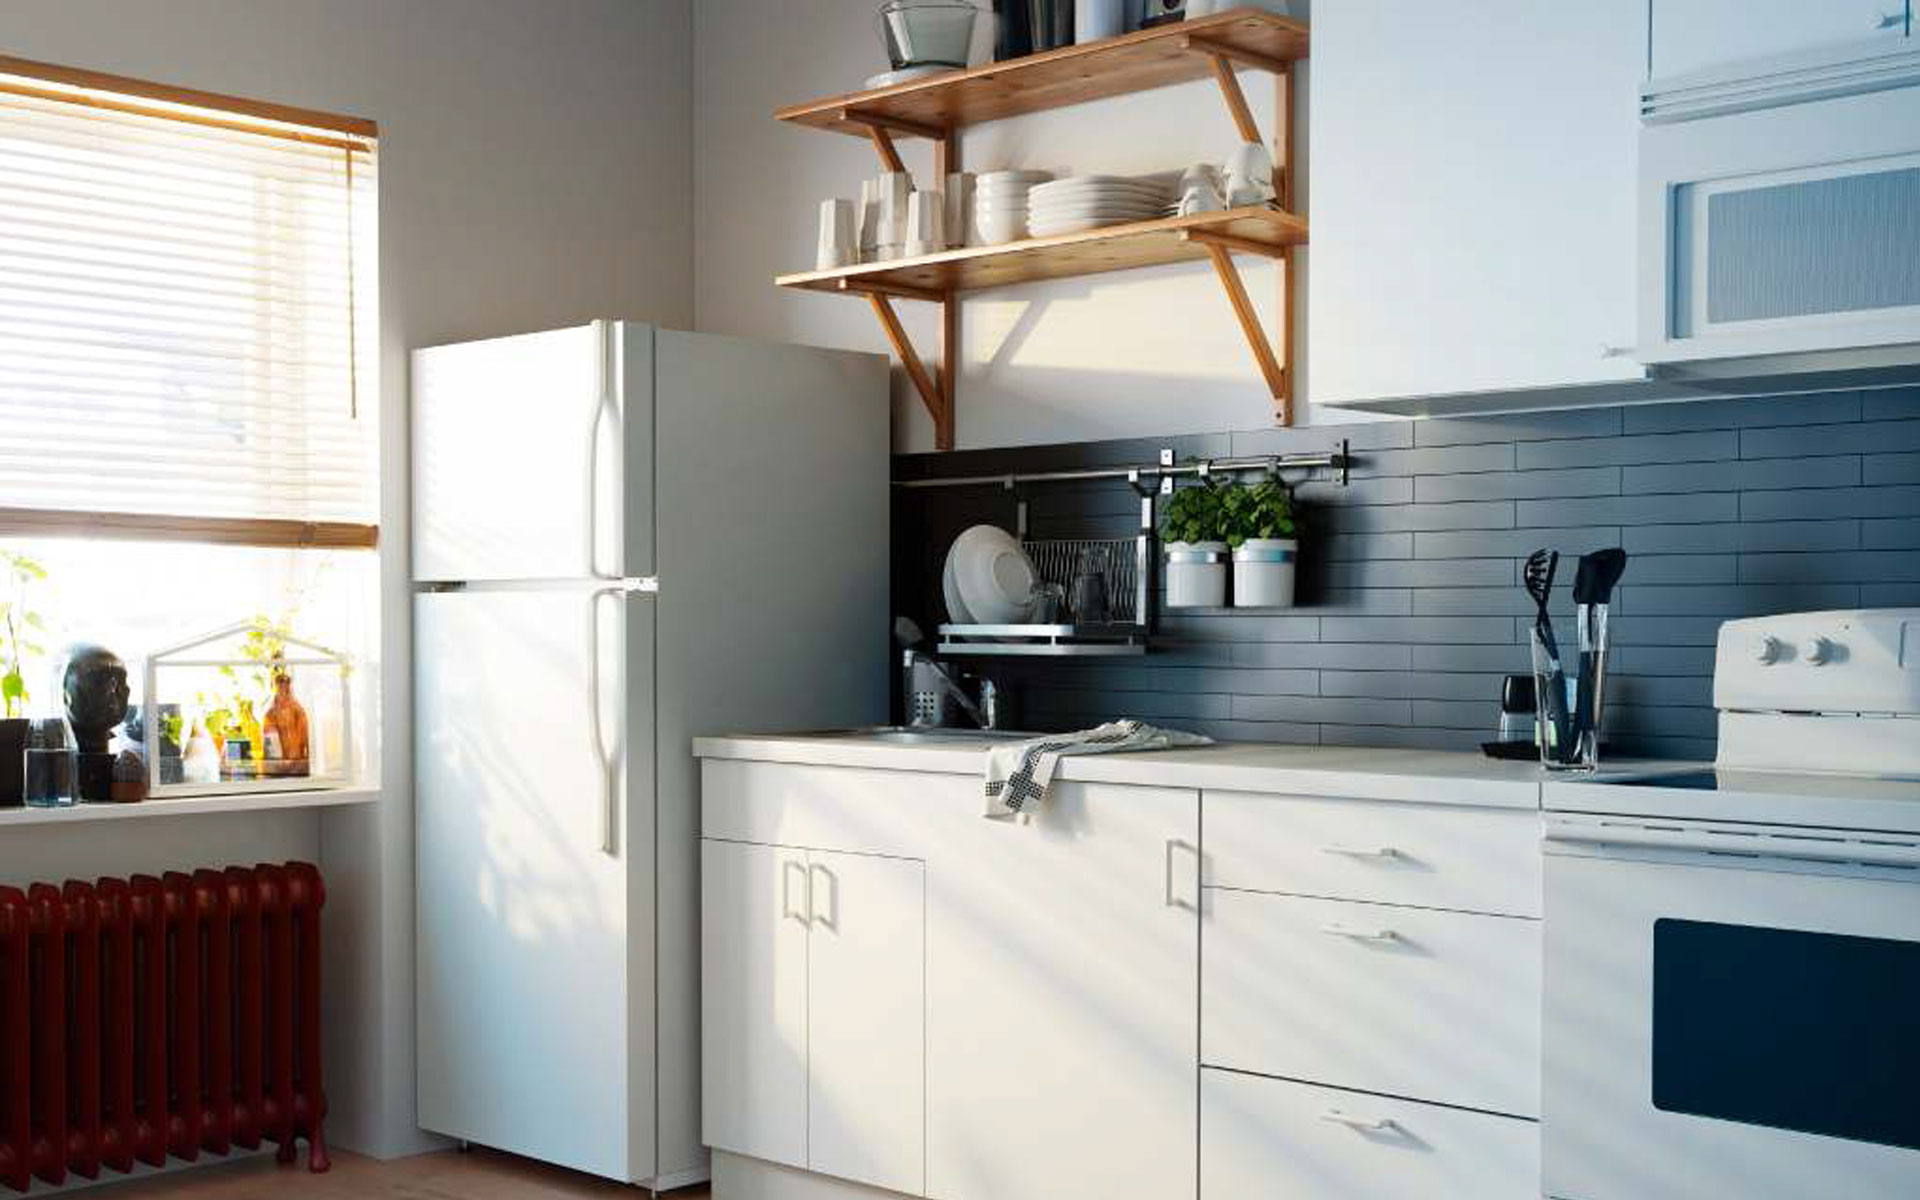 Inspirations Modern Kitchen Storage For Your Ideas Decorations Kitchen Decorations Exciting Wooden Floating Shelves As Glass Storage At White Wall Kitchen Painted